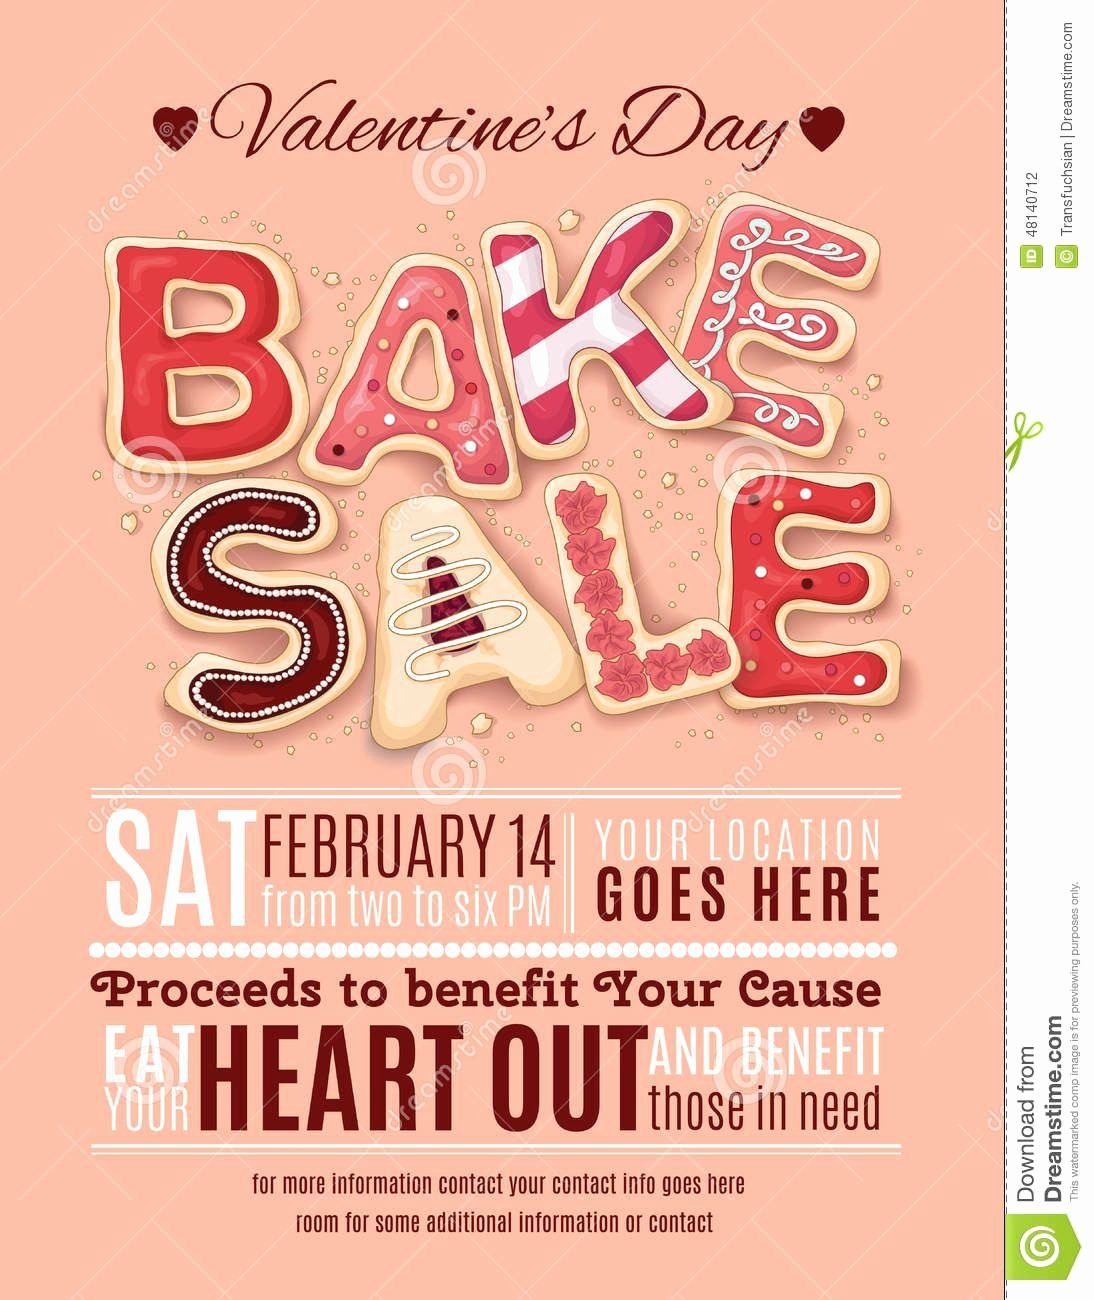 Bake Sale Flyer Ideas Fresh Valentines Day Bake Sale Flyer Template Download From